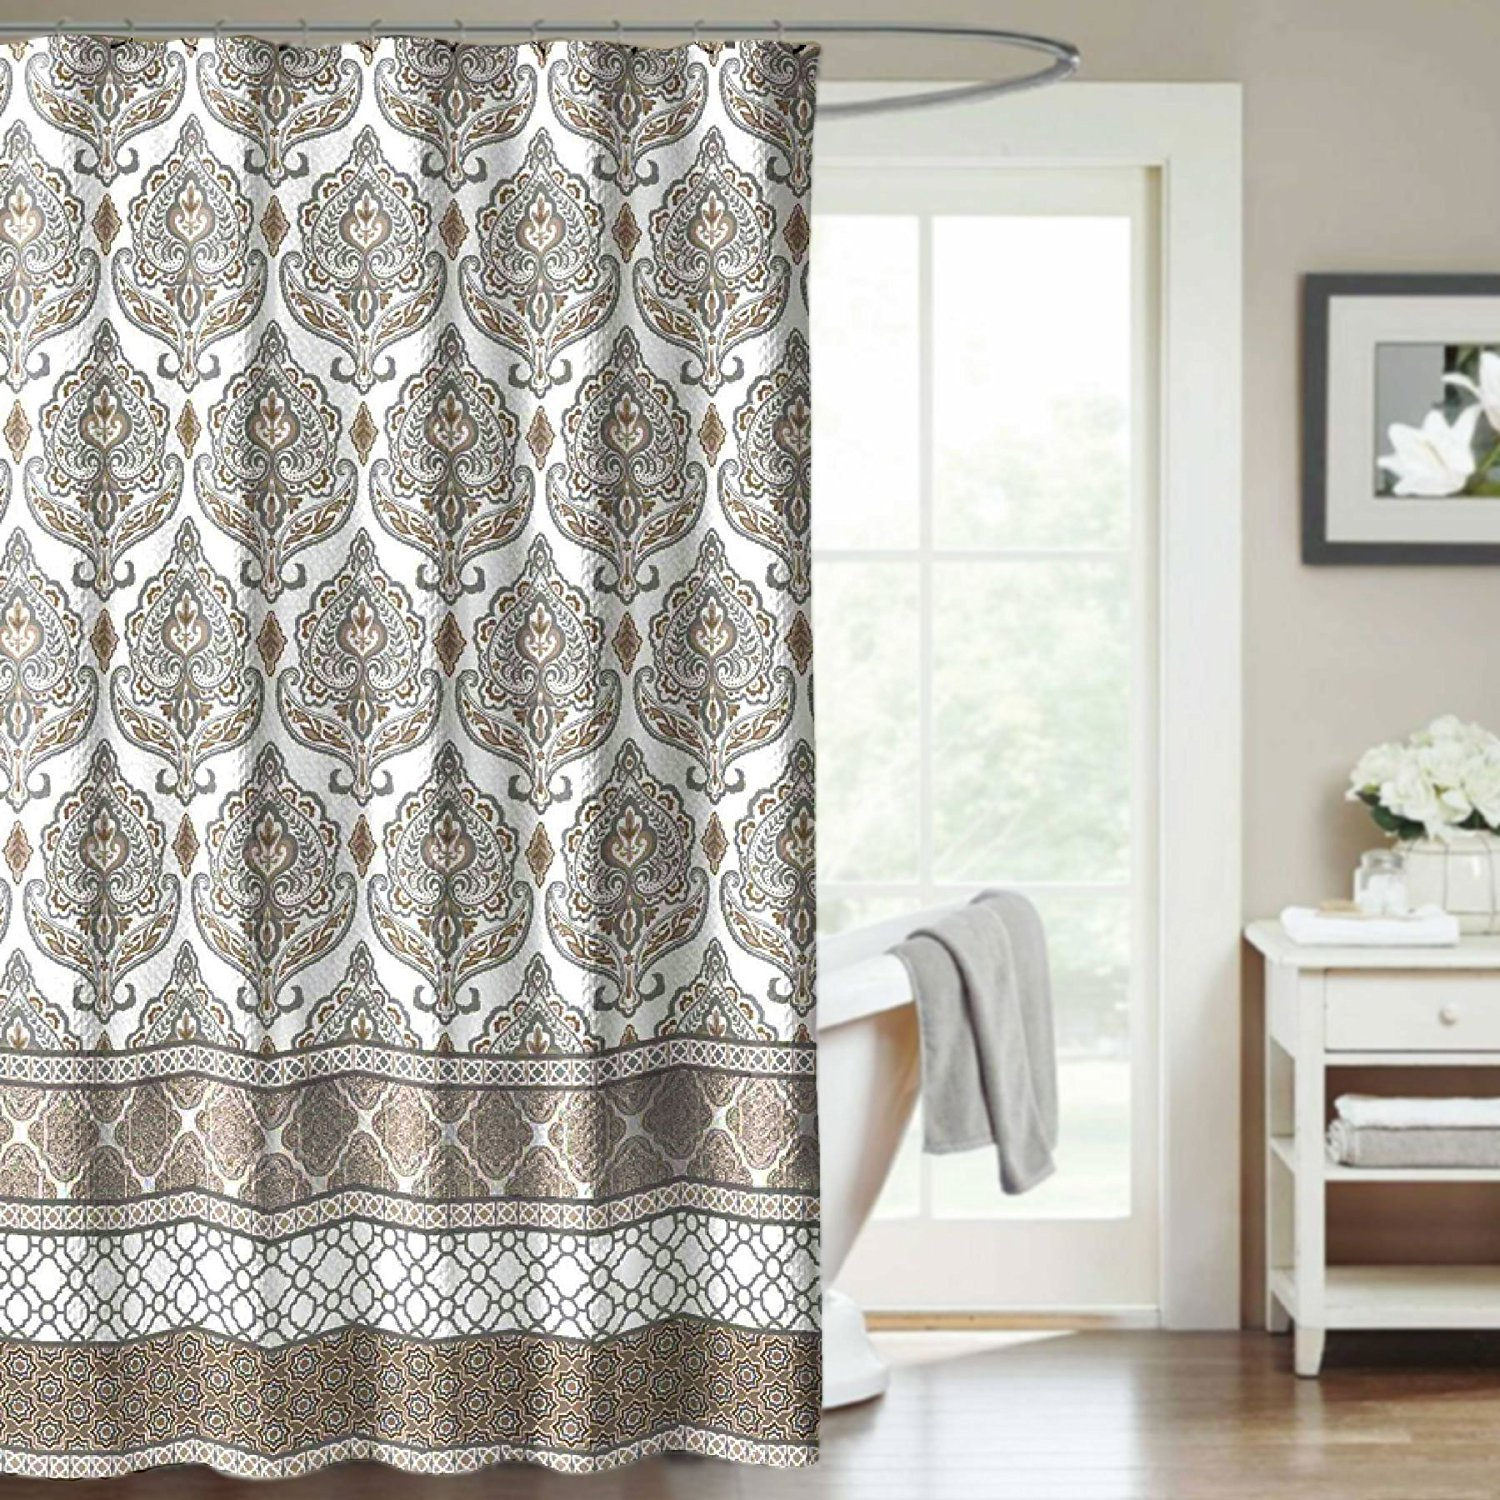 Shower Curtain Damask Medallion Tan And Gray Filigree Decorative Fabric  Bathroom